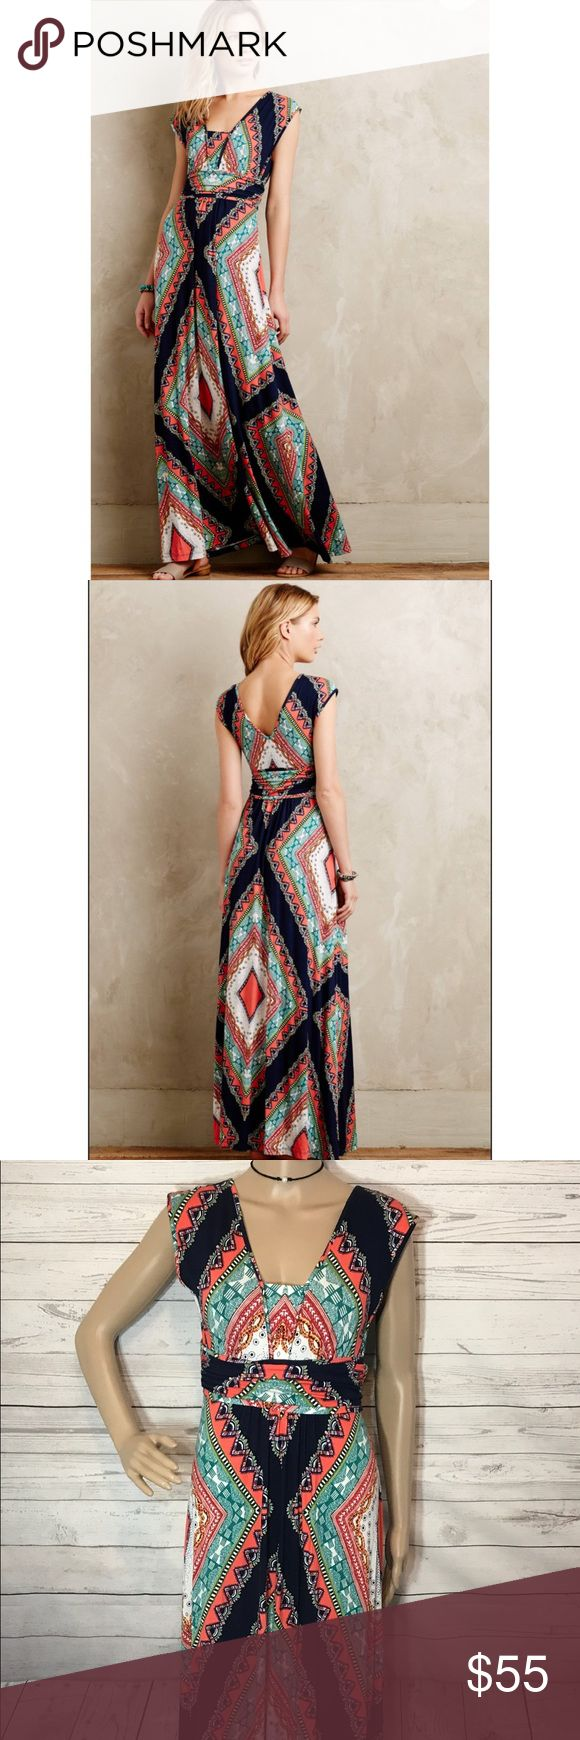 "Anthropologie Maeve Verda Maxi Dress Aztec Boho Style No. 4130339188012 ; Color Code:  By Maeve Rayon-spandex jersey knit Ruched banded waist Pullover styling Machine wash  In Excellent Condition. Gently worn, no stains or holes. Can size down also due to stretch. Approx Measurements: 36"" bust stretched a bit.., 25"" empire waist Unstretched, 53"" long shoulder to hem.   Southwestern, Aztec/Boho print, can be styled with ankle boots and a jacket or sweater for fall. Anthropologie Dresses Maxi"